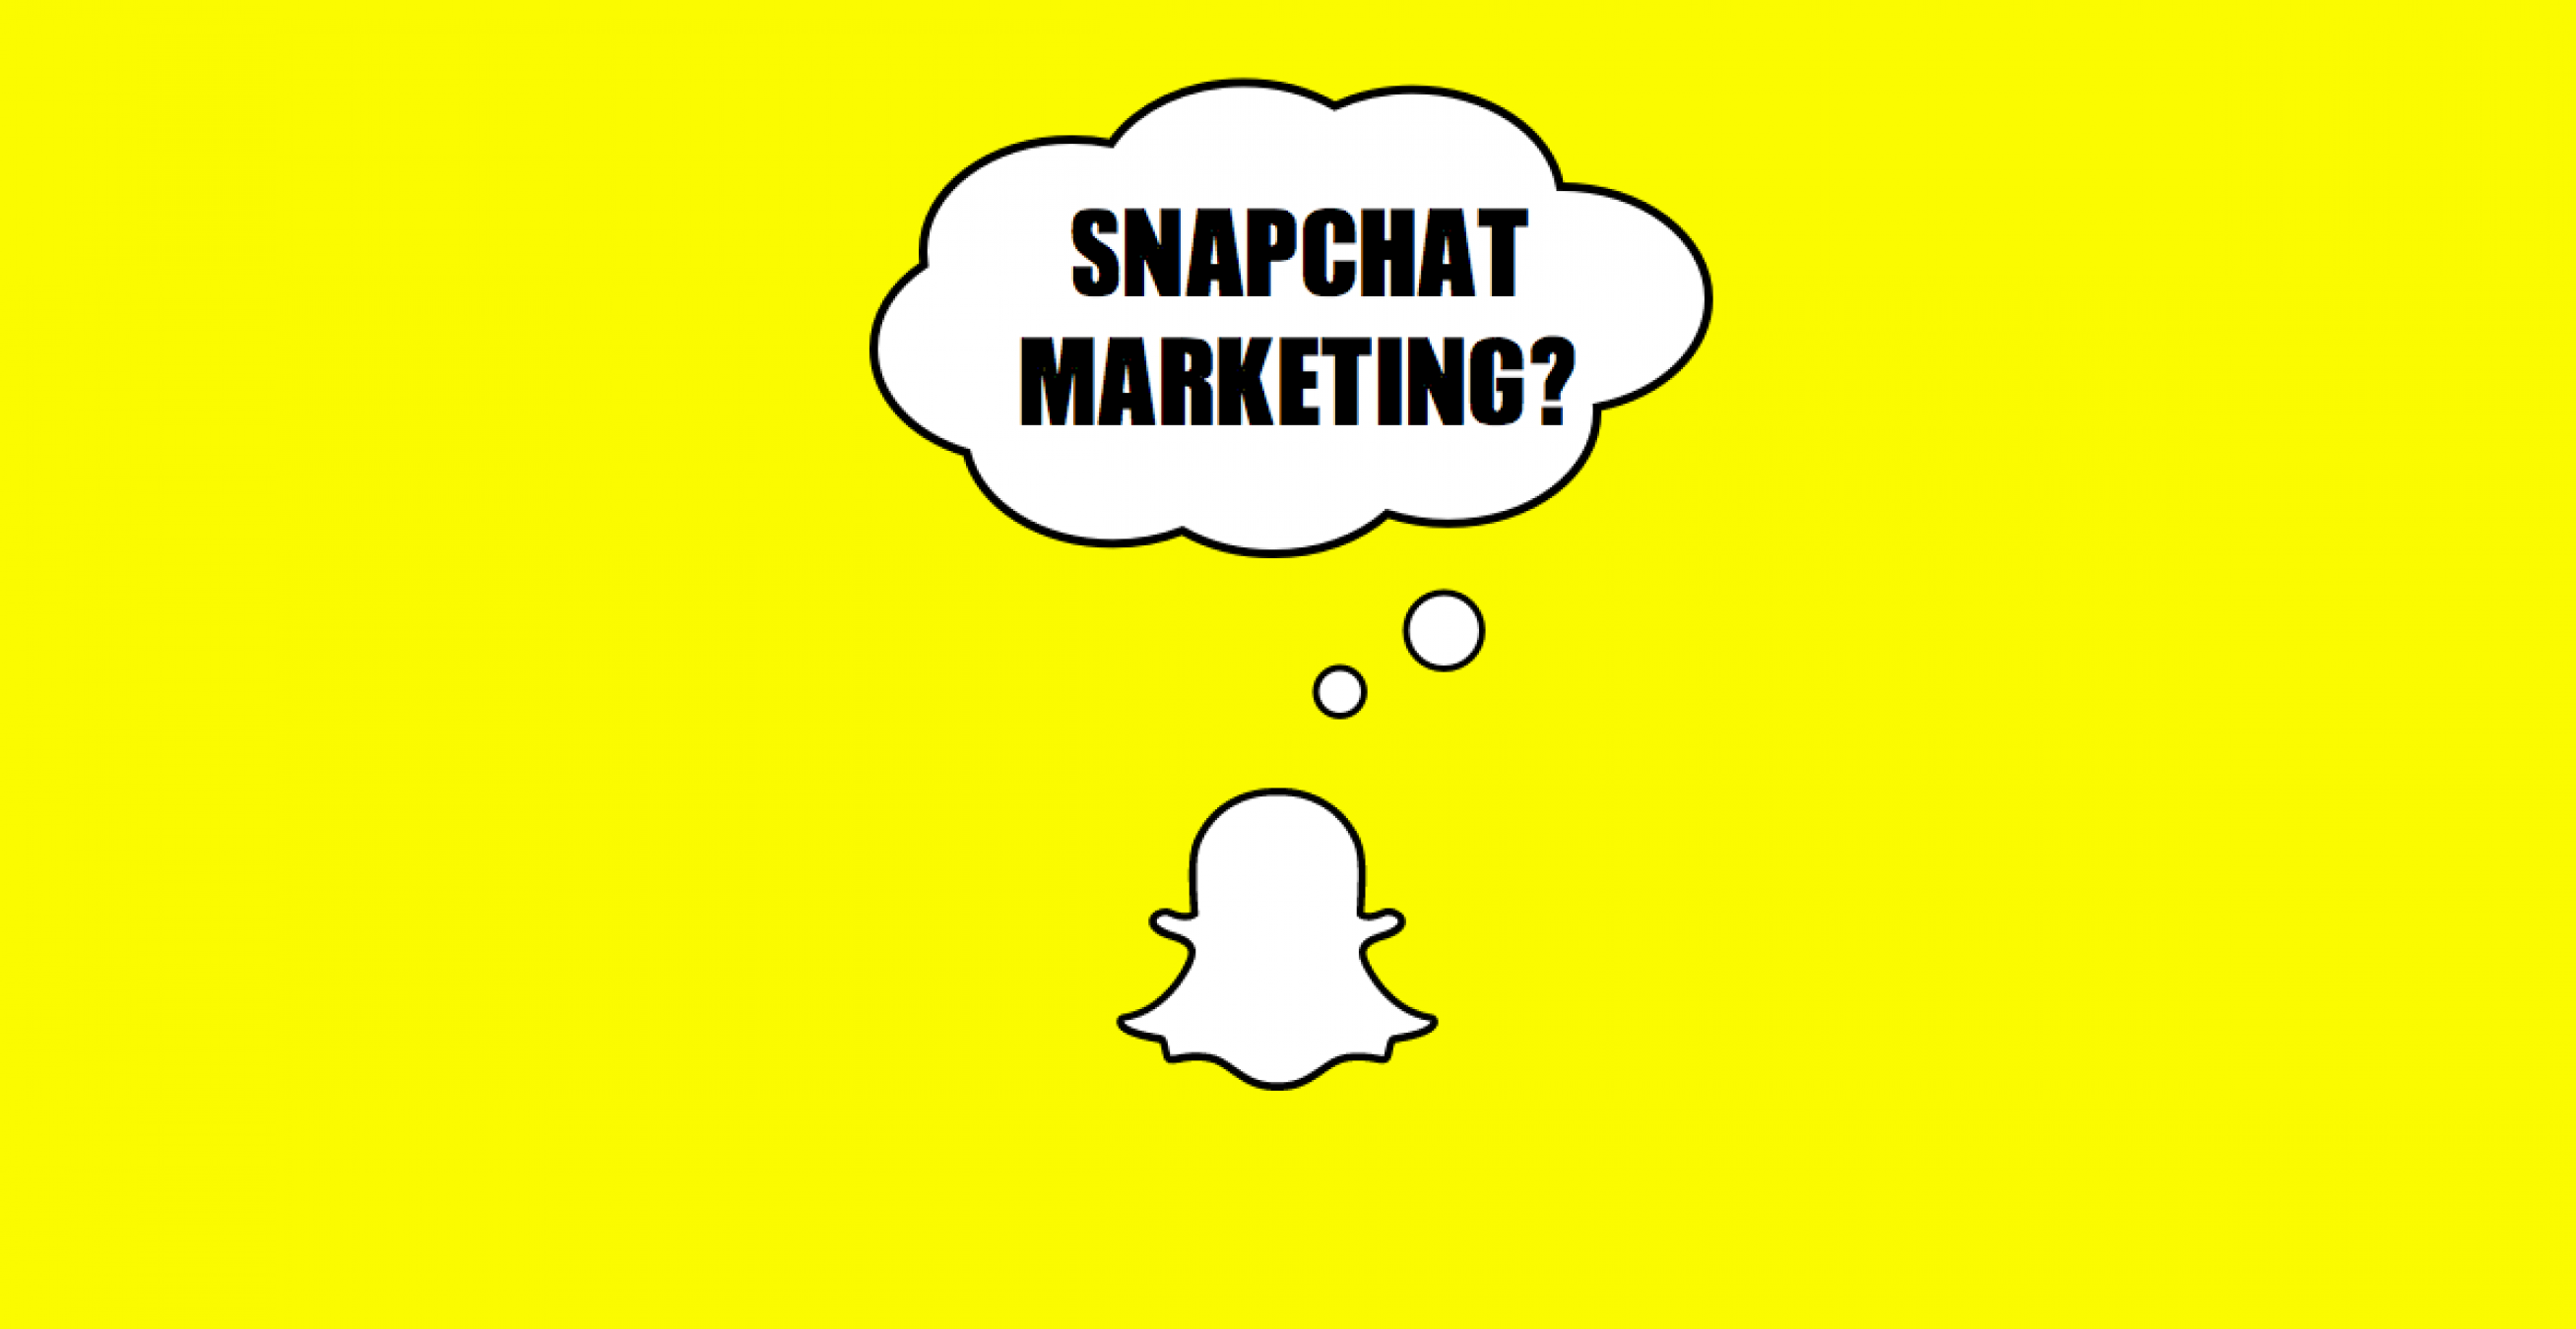 Snapchat marketing – Kdor prvi pride, prvi melje